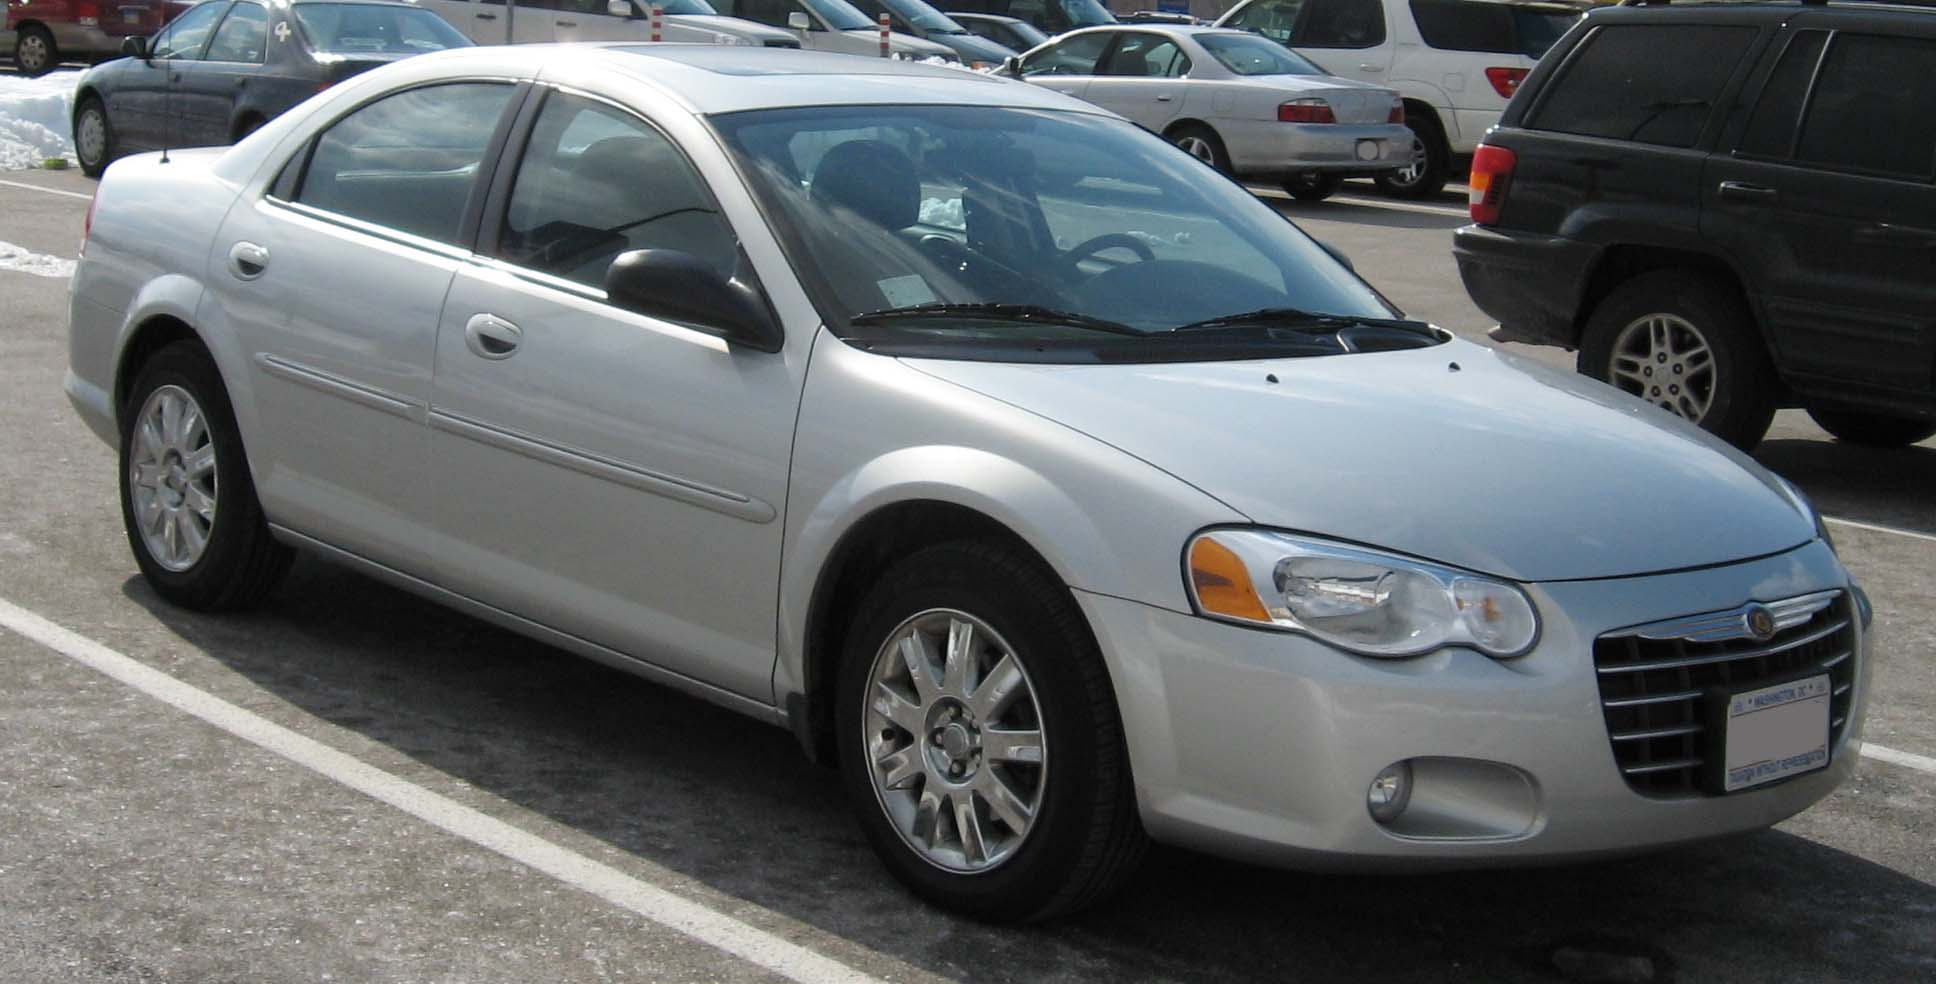 Chrysler Sebring In Houston 187 Exchange Cars In Your City